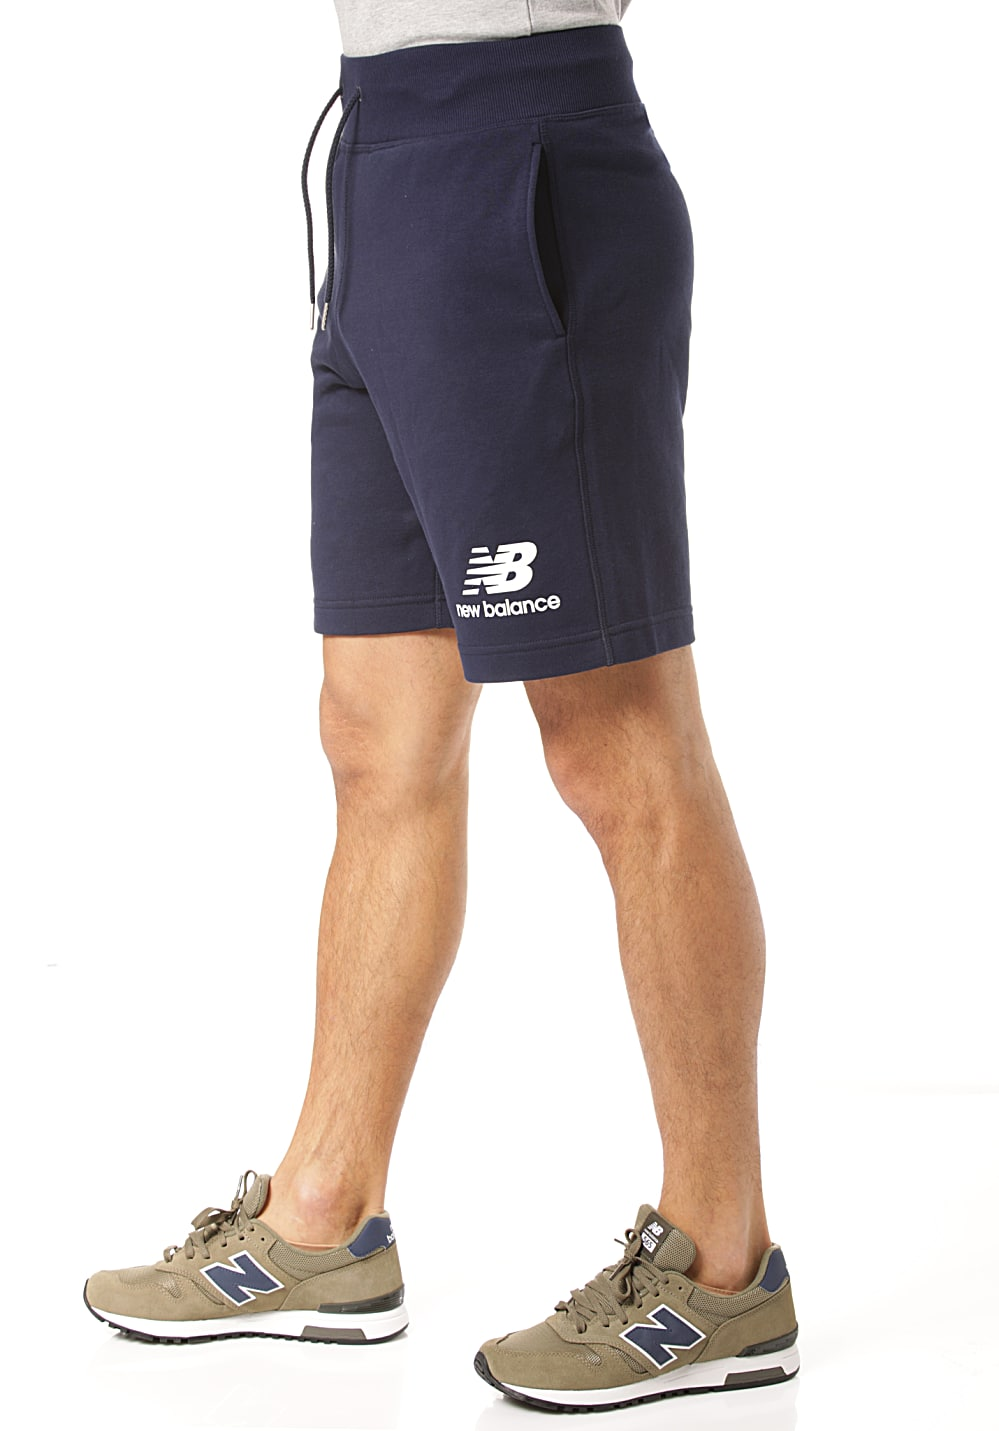 dba2e59edce5e Next. NEW BALANCE. Essentials Stacked Logo - Shorts for Men. €39.95. incl.